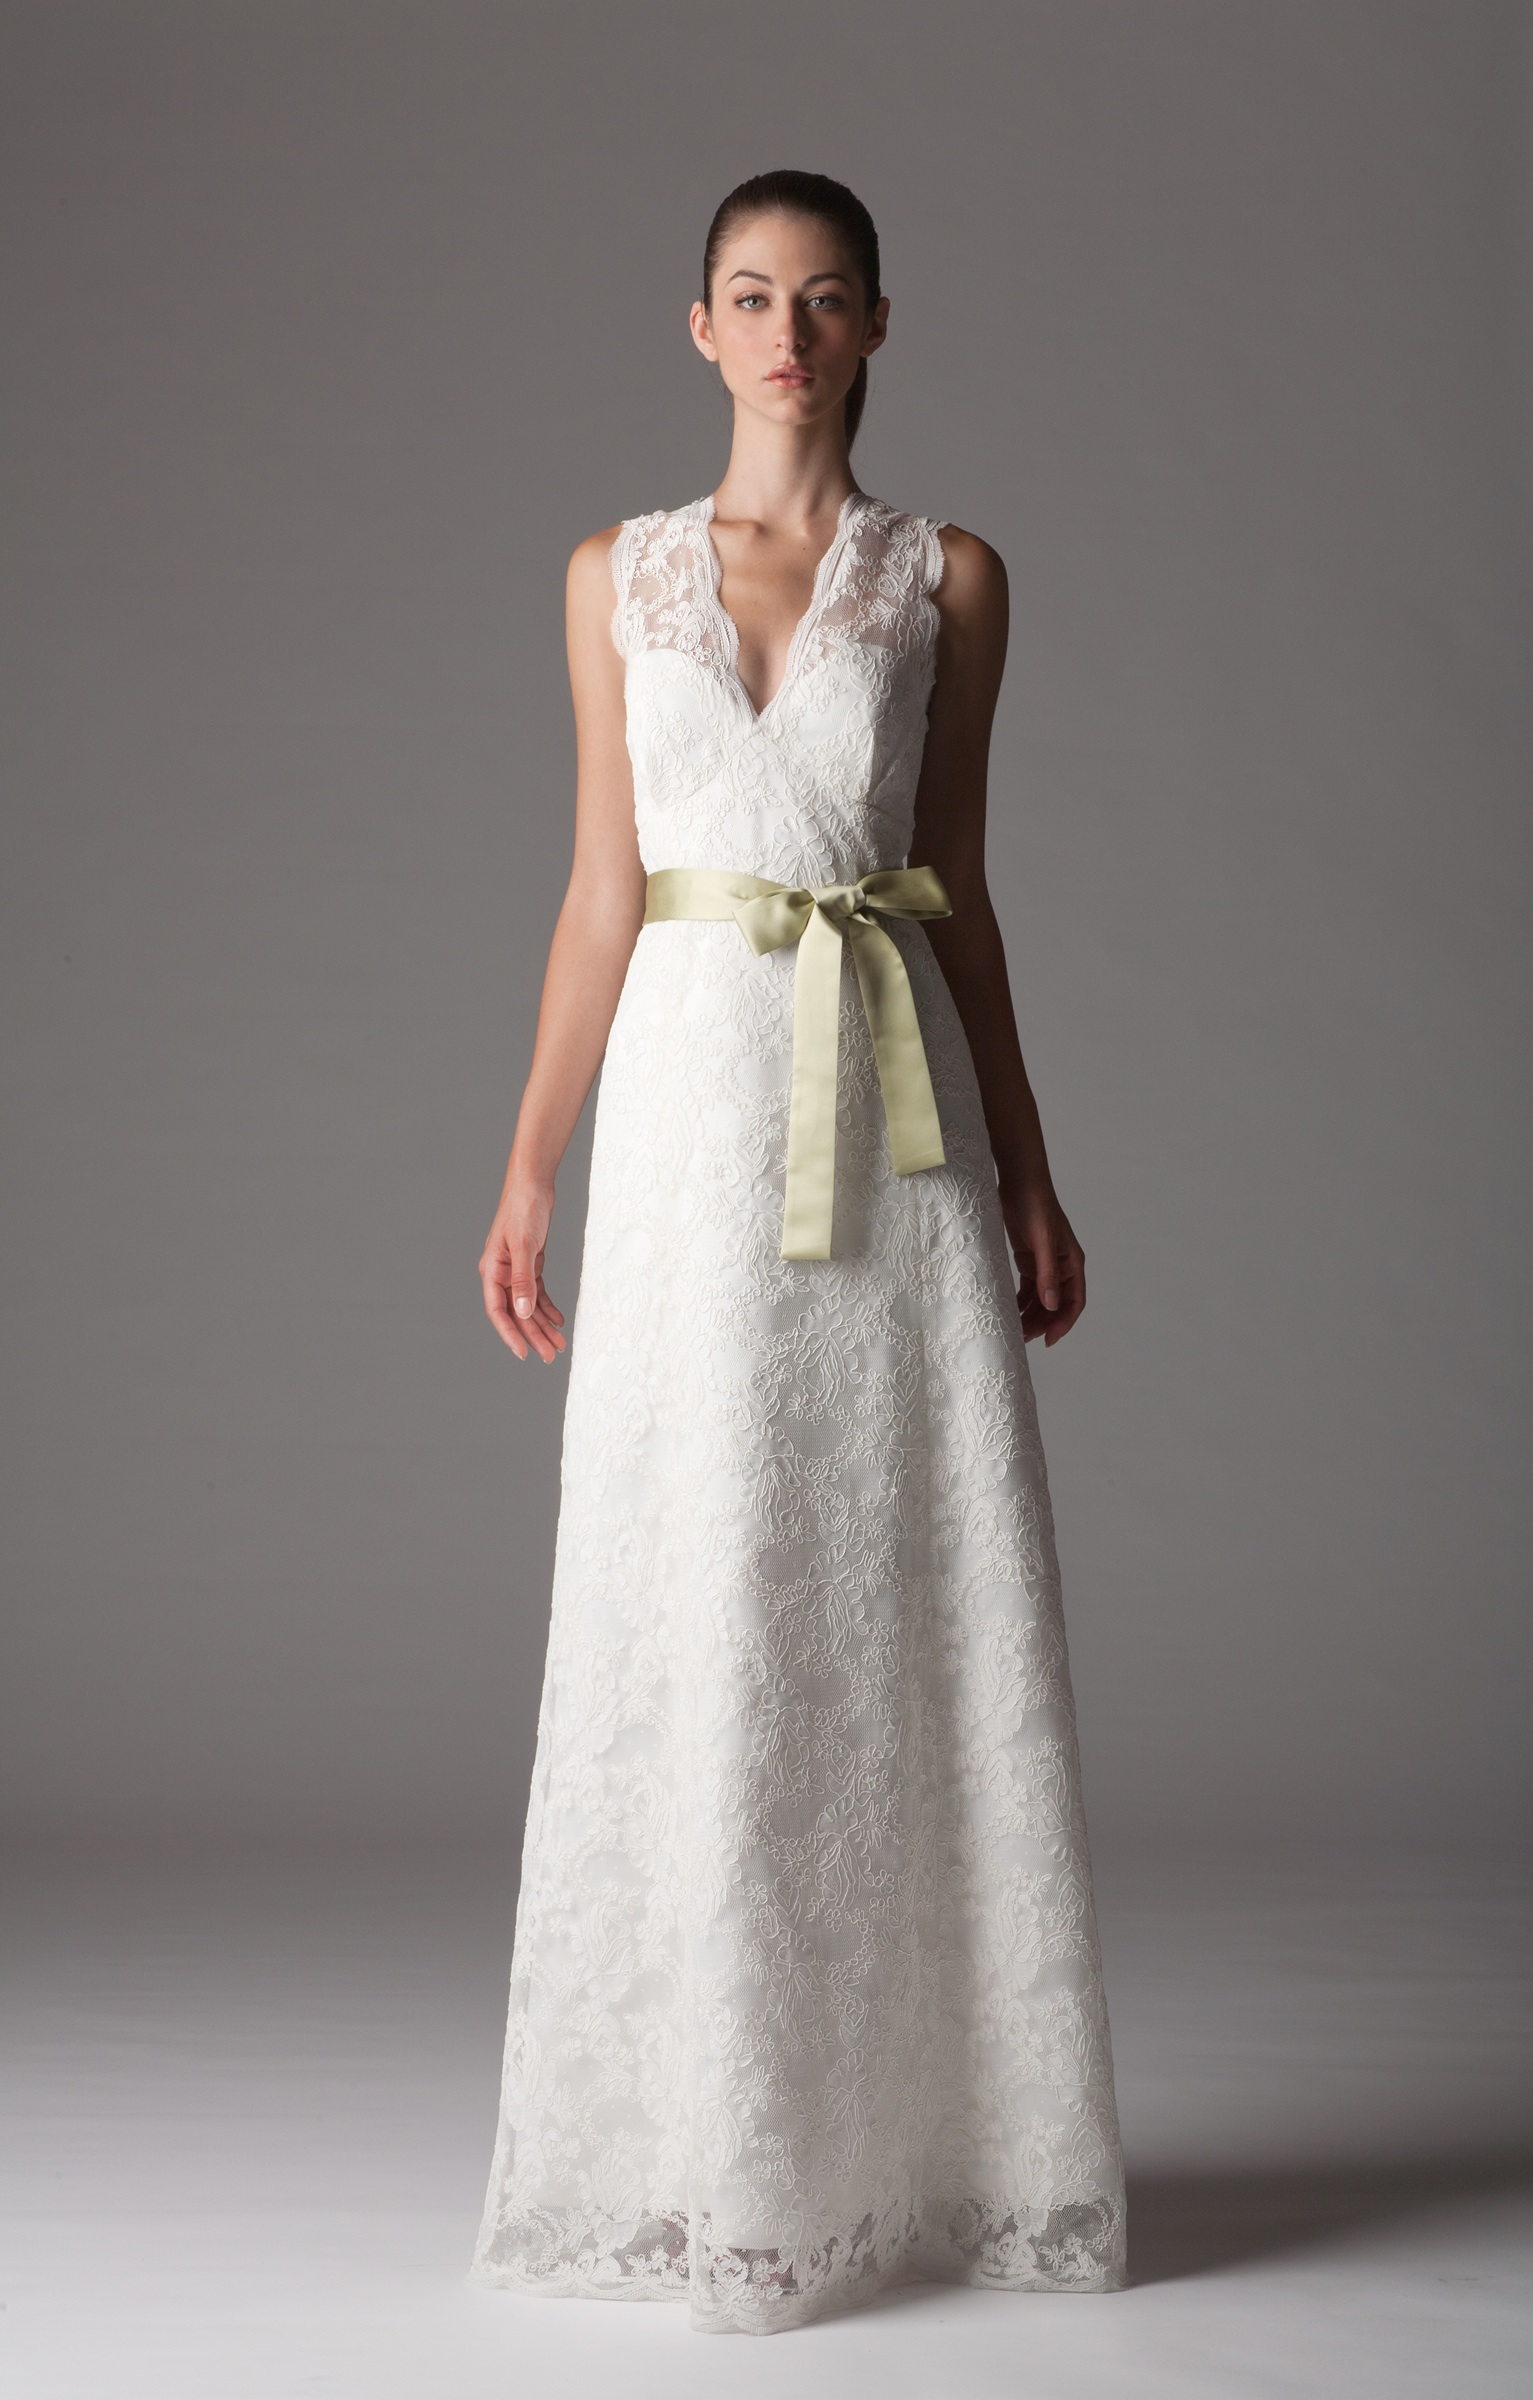 lace wedding dress with v neck and modified aline